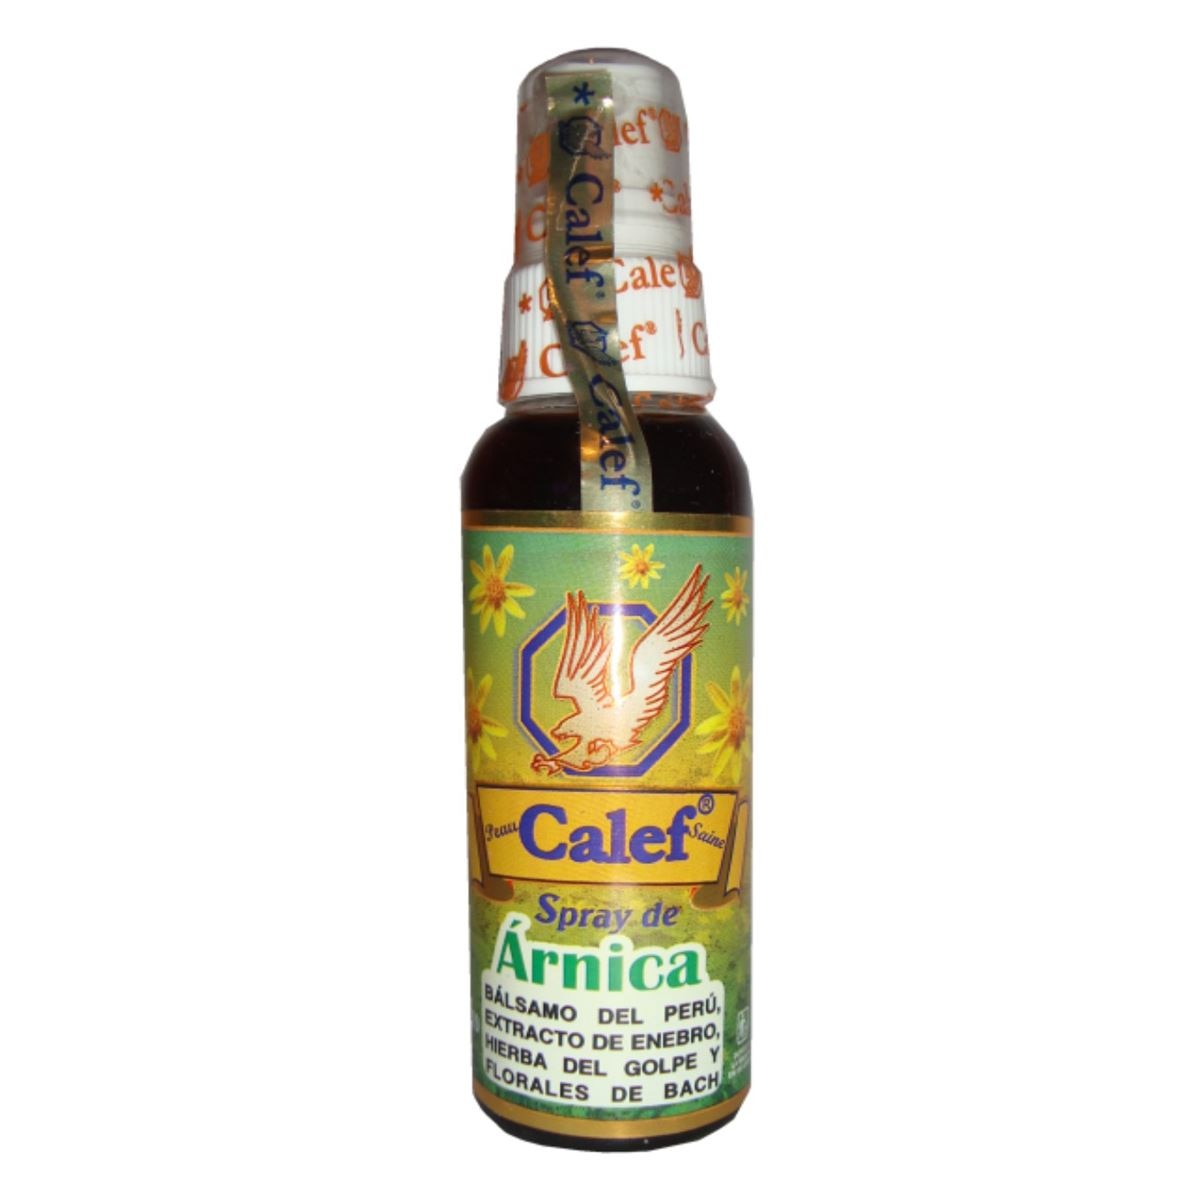 Spray de Árnica calef 60 ml  - Sanborns